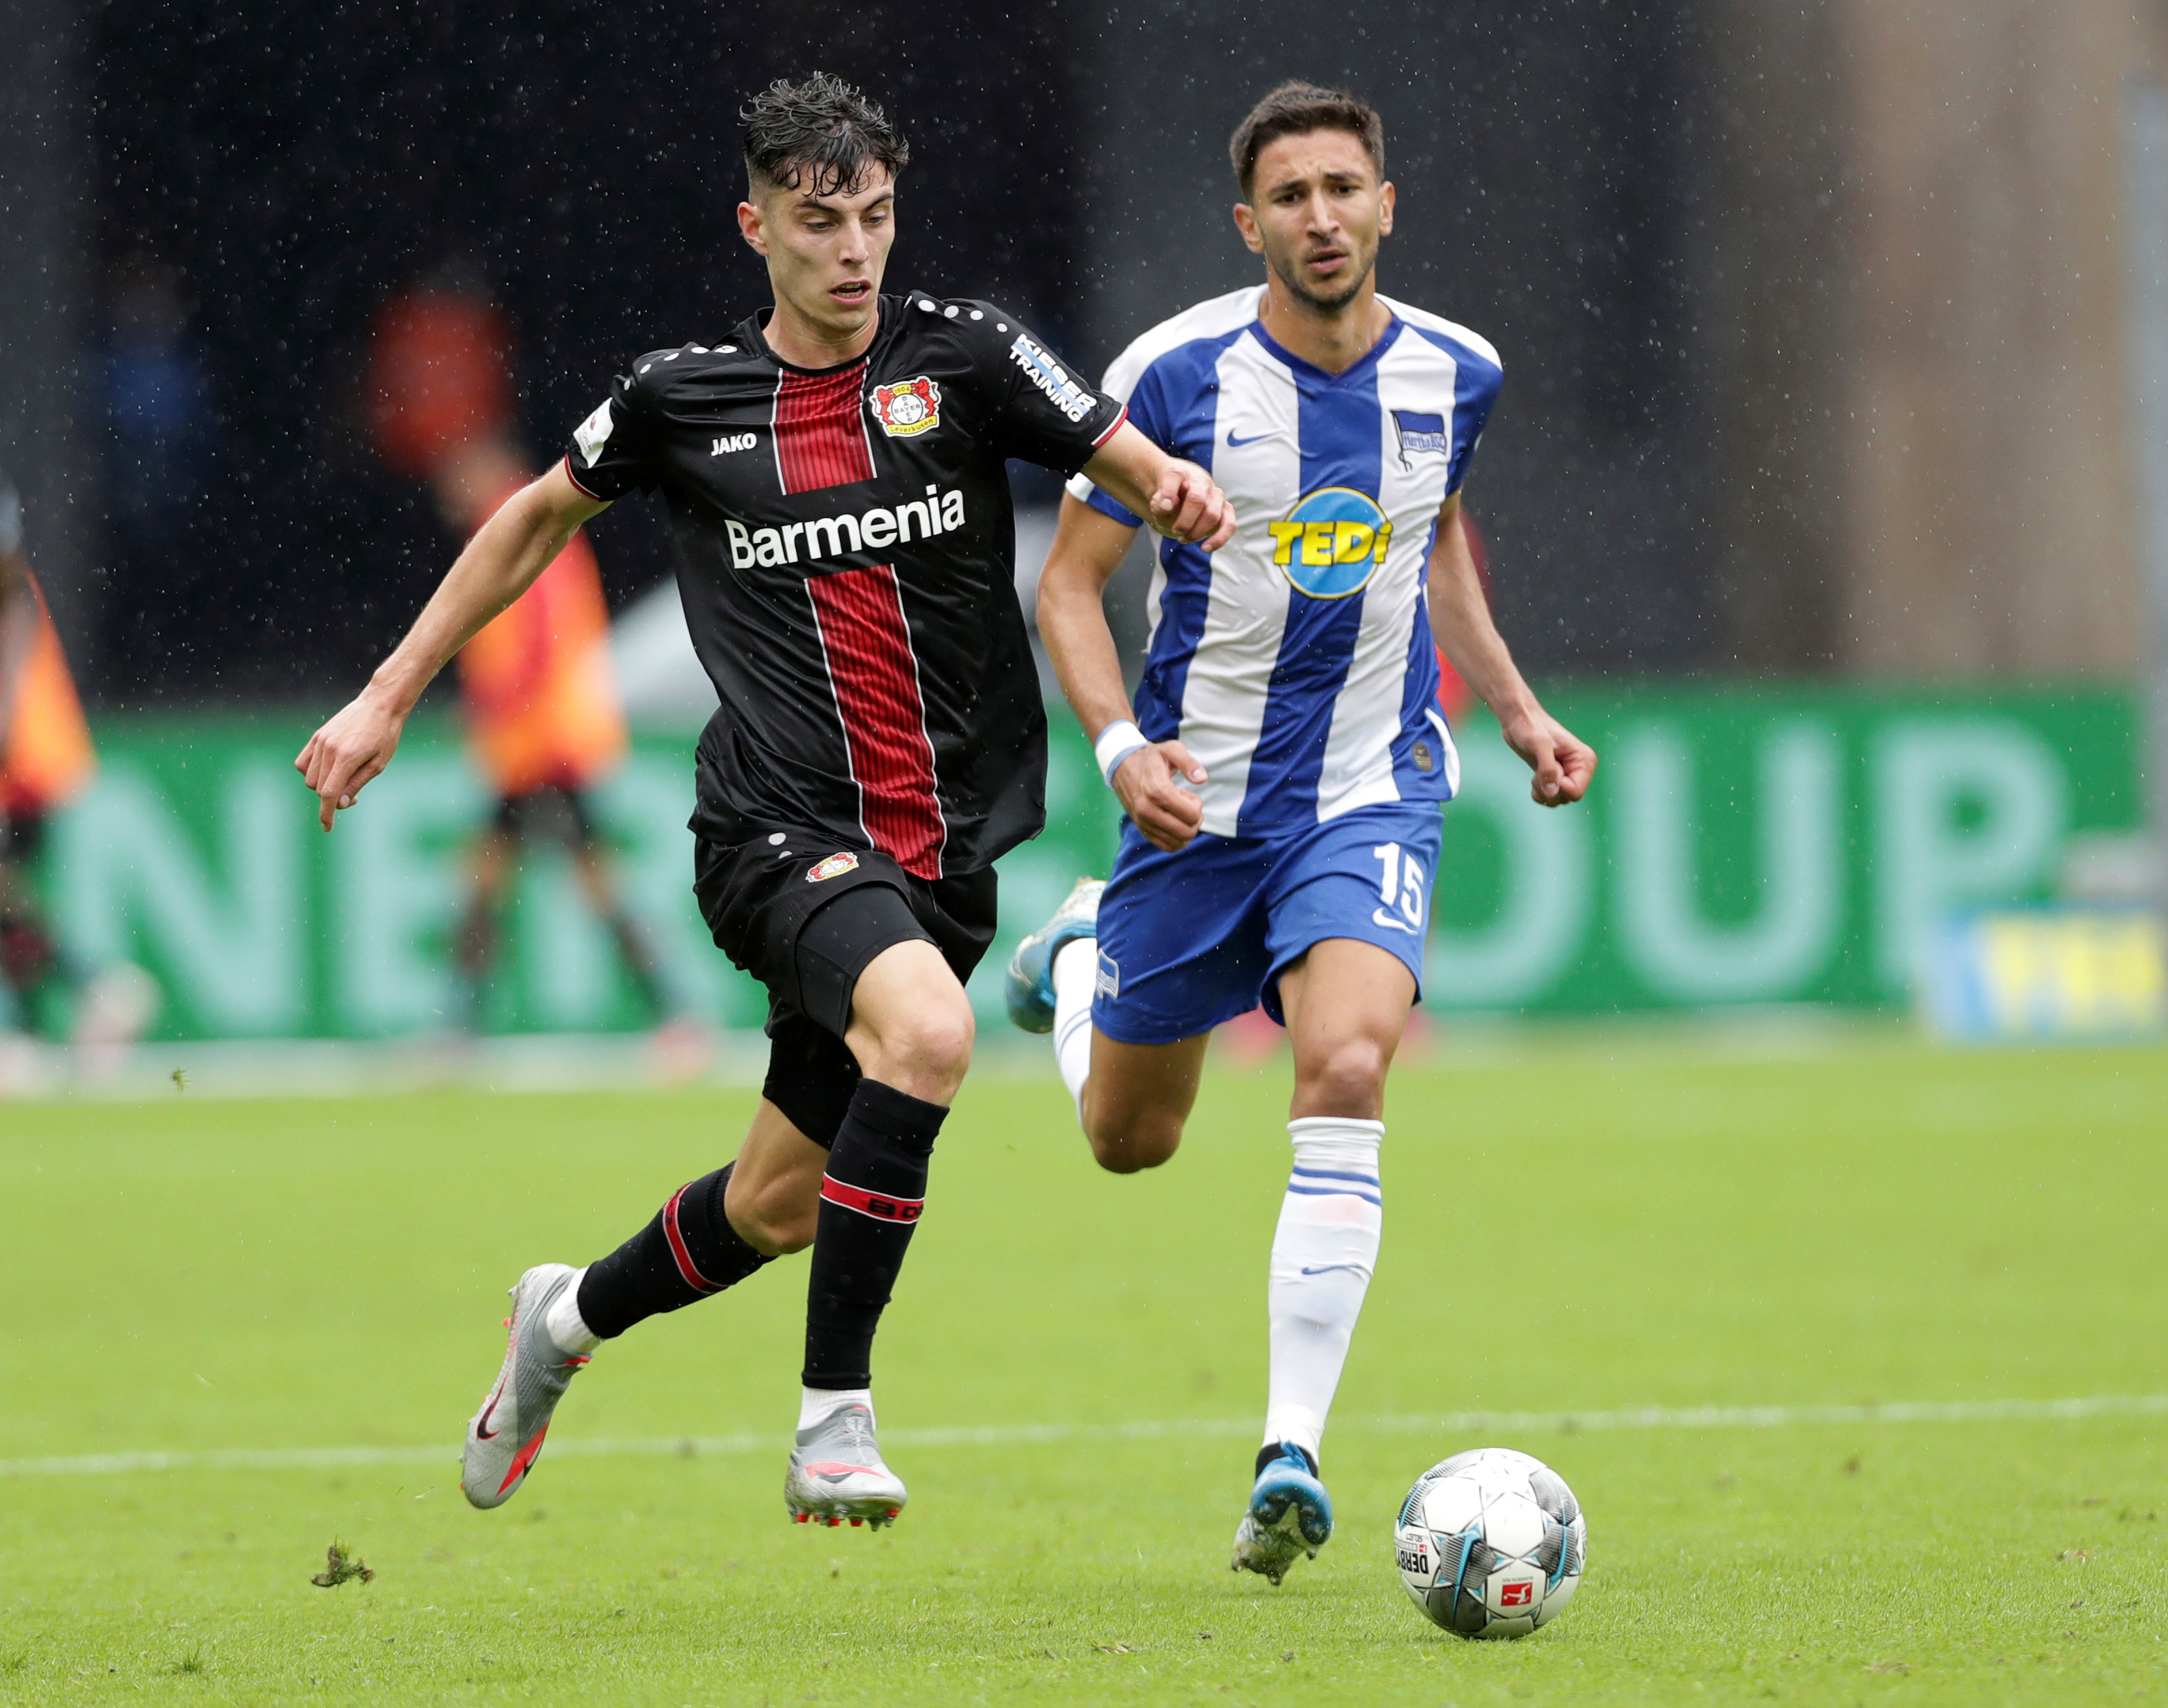 Berlin's Marko Grujic (blue jersey) in action with Leverkusen's Kai Havertz, following the resumption of play behind closed doors after the outbreak of the coronavirus disease (COVID-19). Photo: Reuters